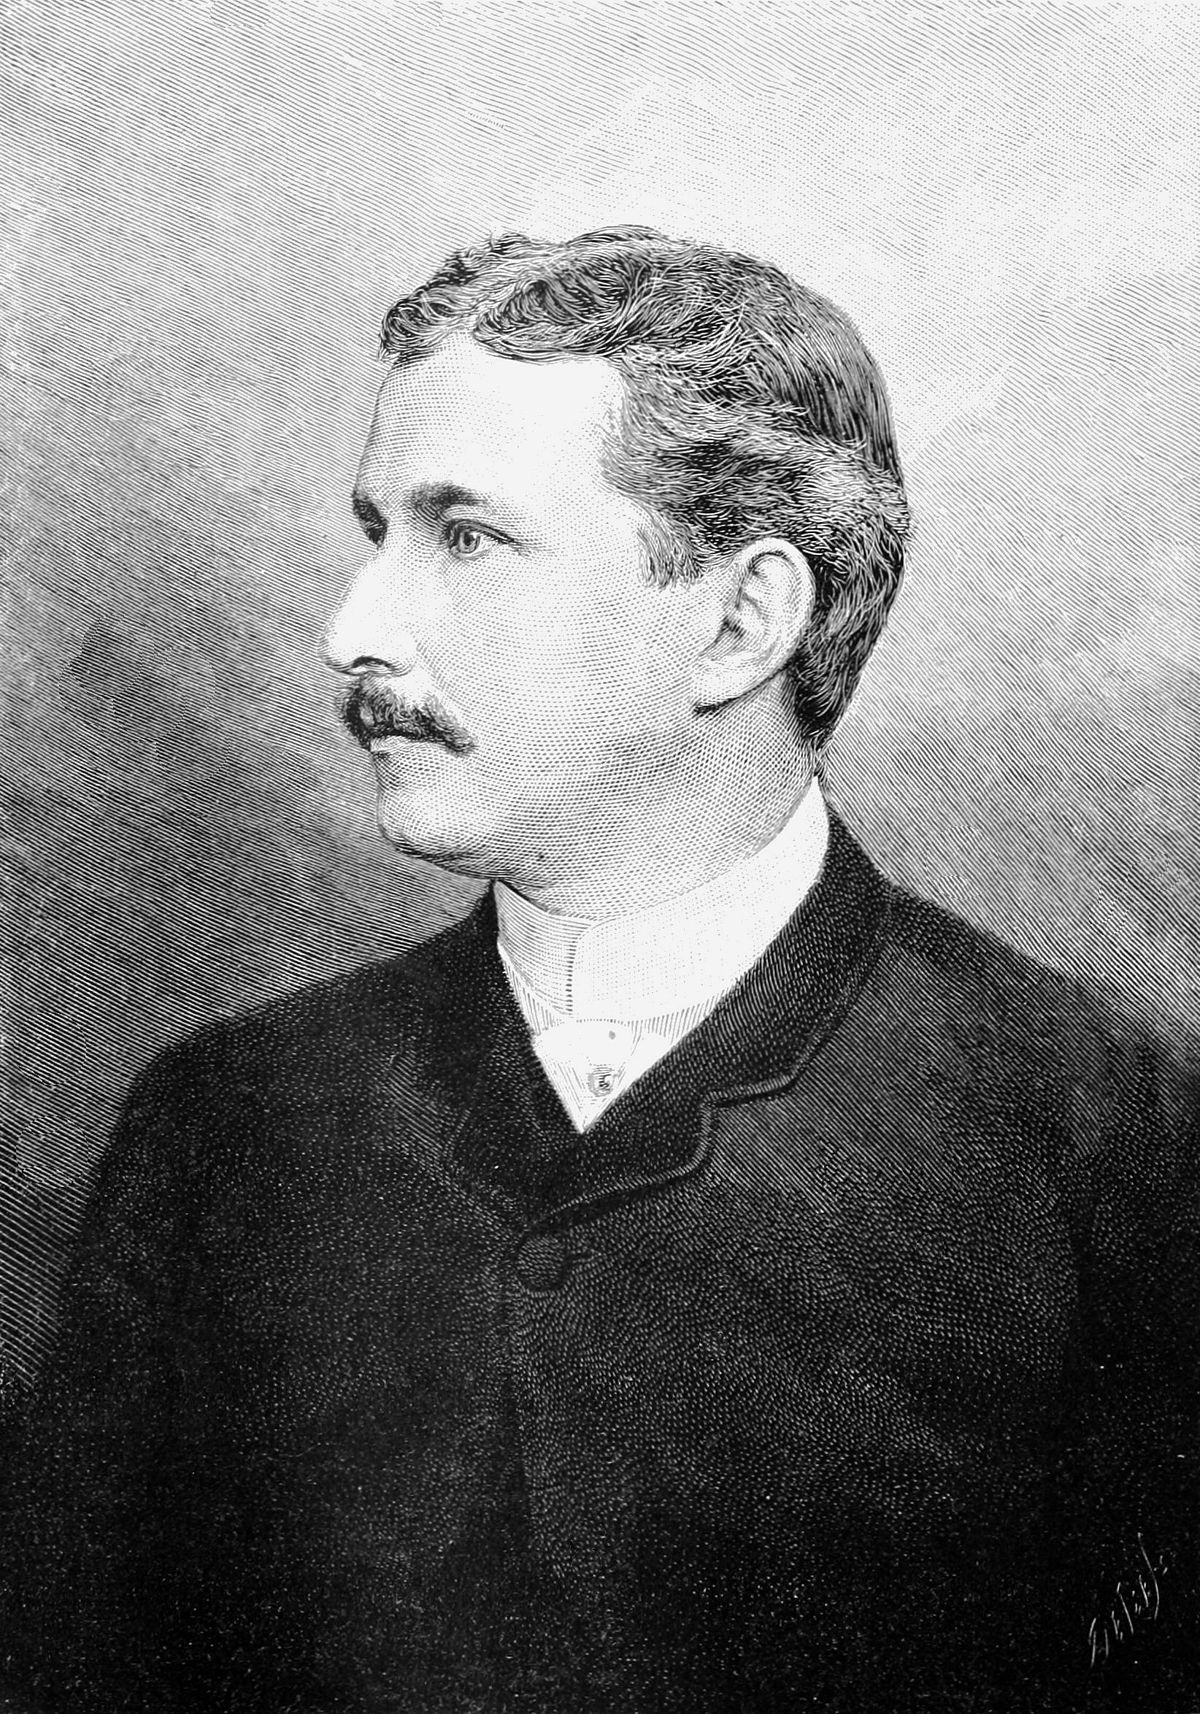 henry carvill lewis